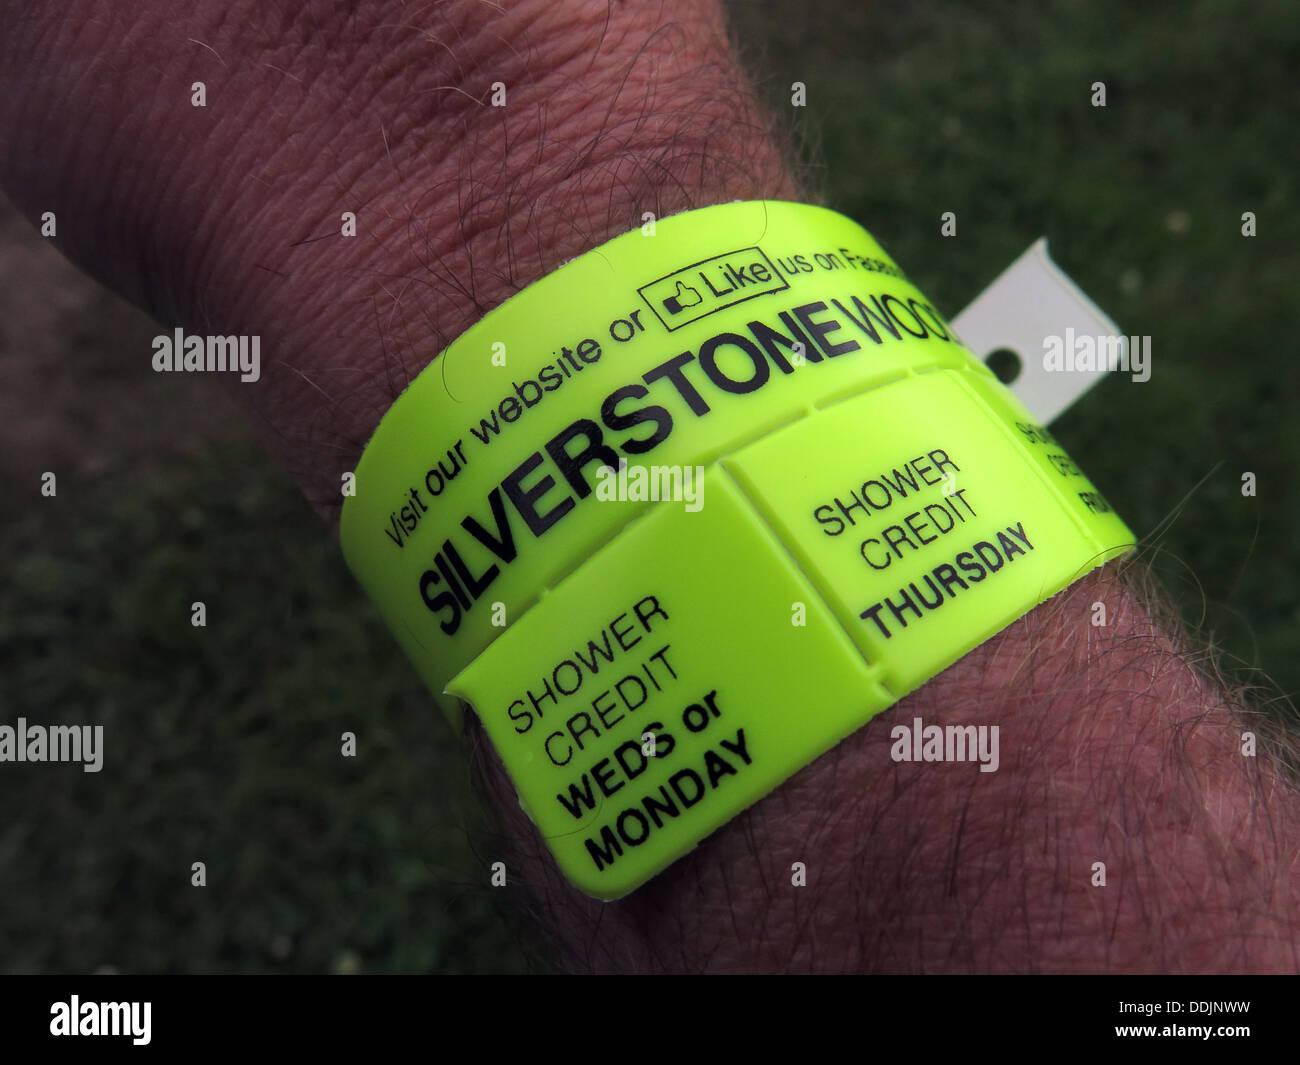 Yellow camping band for British GP June 2013 Silverstone Woods England UK - Stock Image